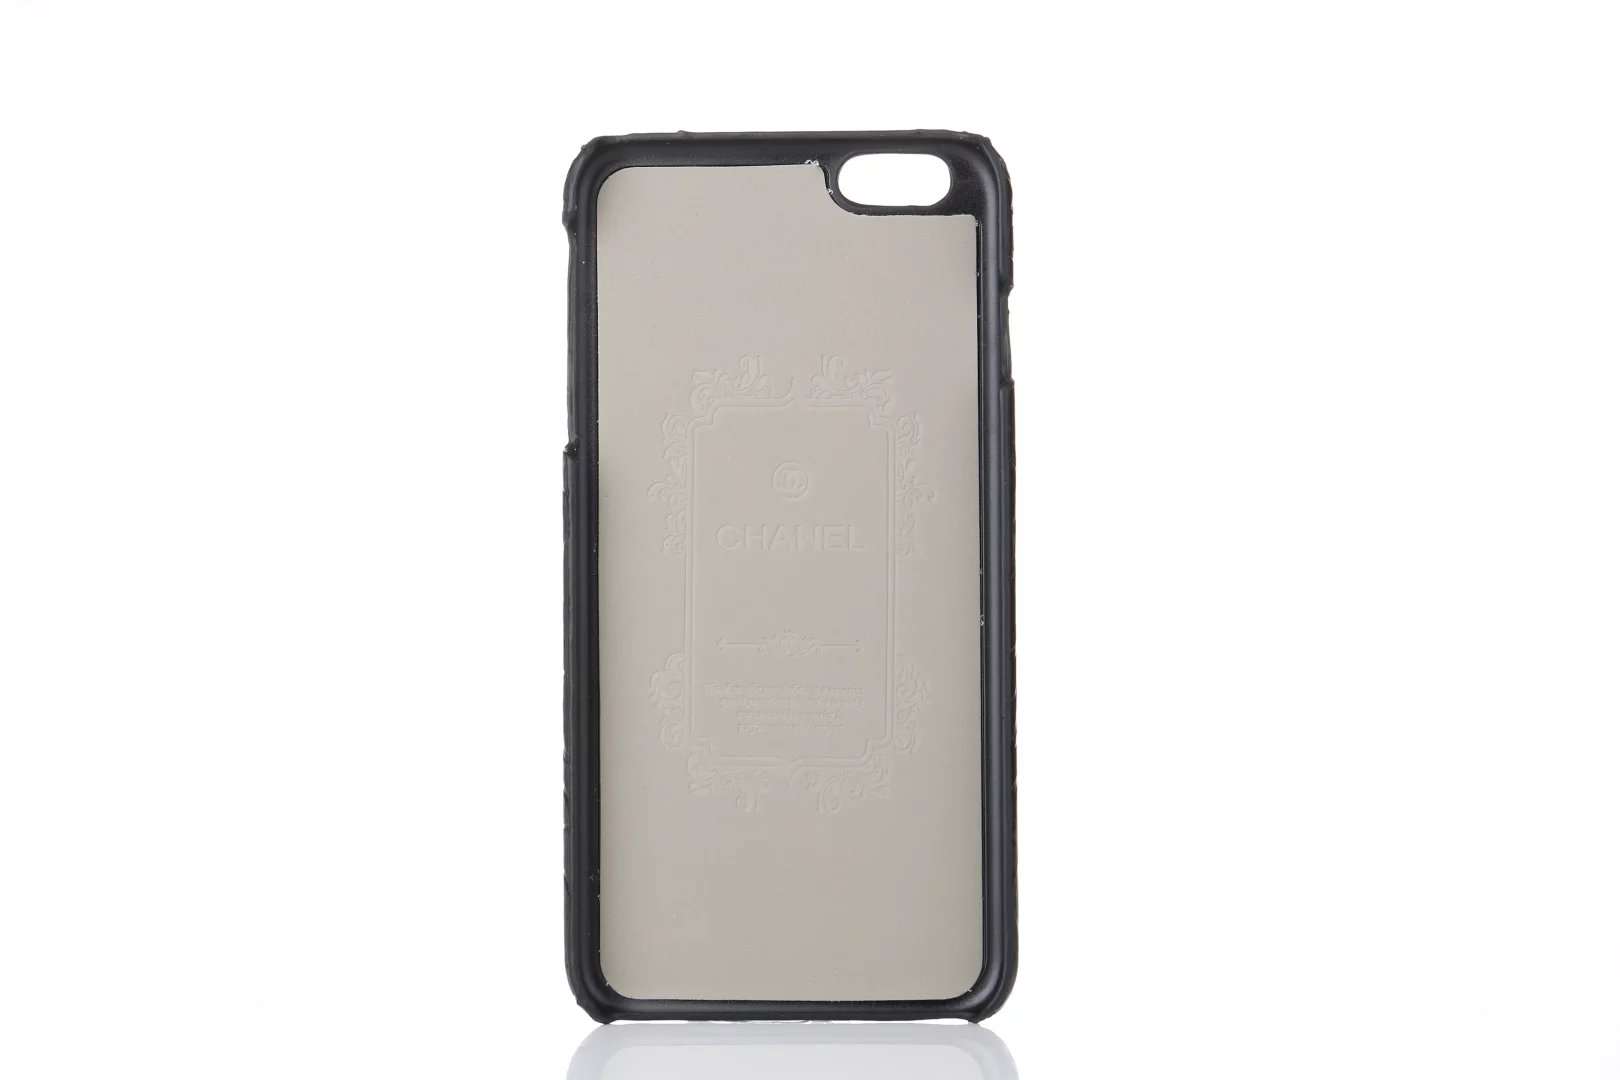 phone cases for iphone 7 Plus what is the best iphone 7 Plus case fashion iphone7 Plus case good phone cases for iphone 7 Plus apple iphone case 7 Plus iphone 7 Plusa covers iphone 7 Plus nice cases new iphone 7 Plus cases buy iphone 7 Plus covers